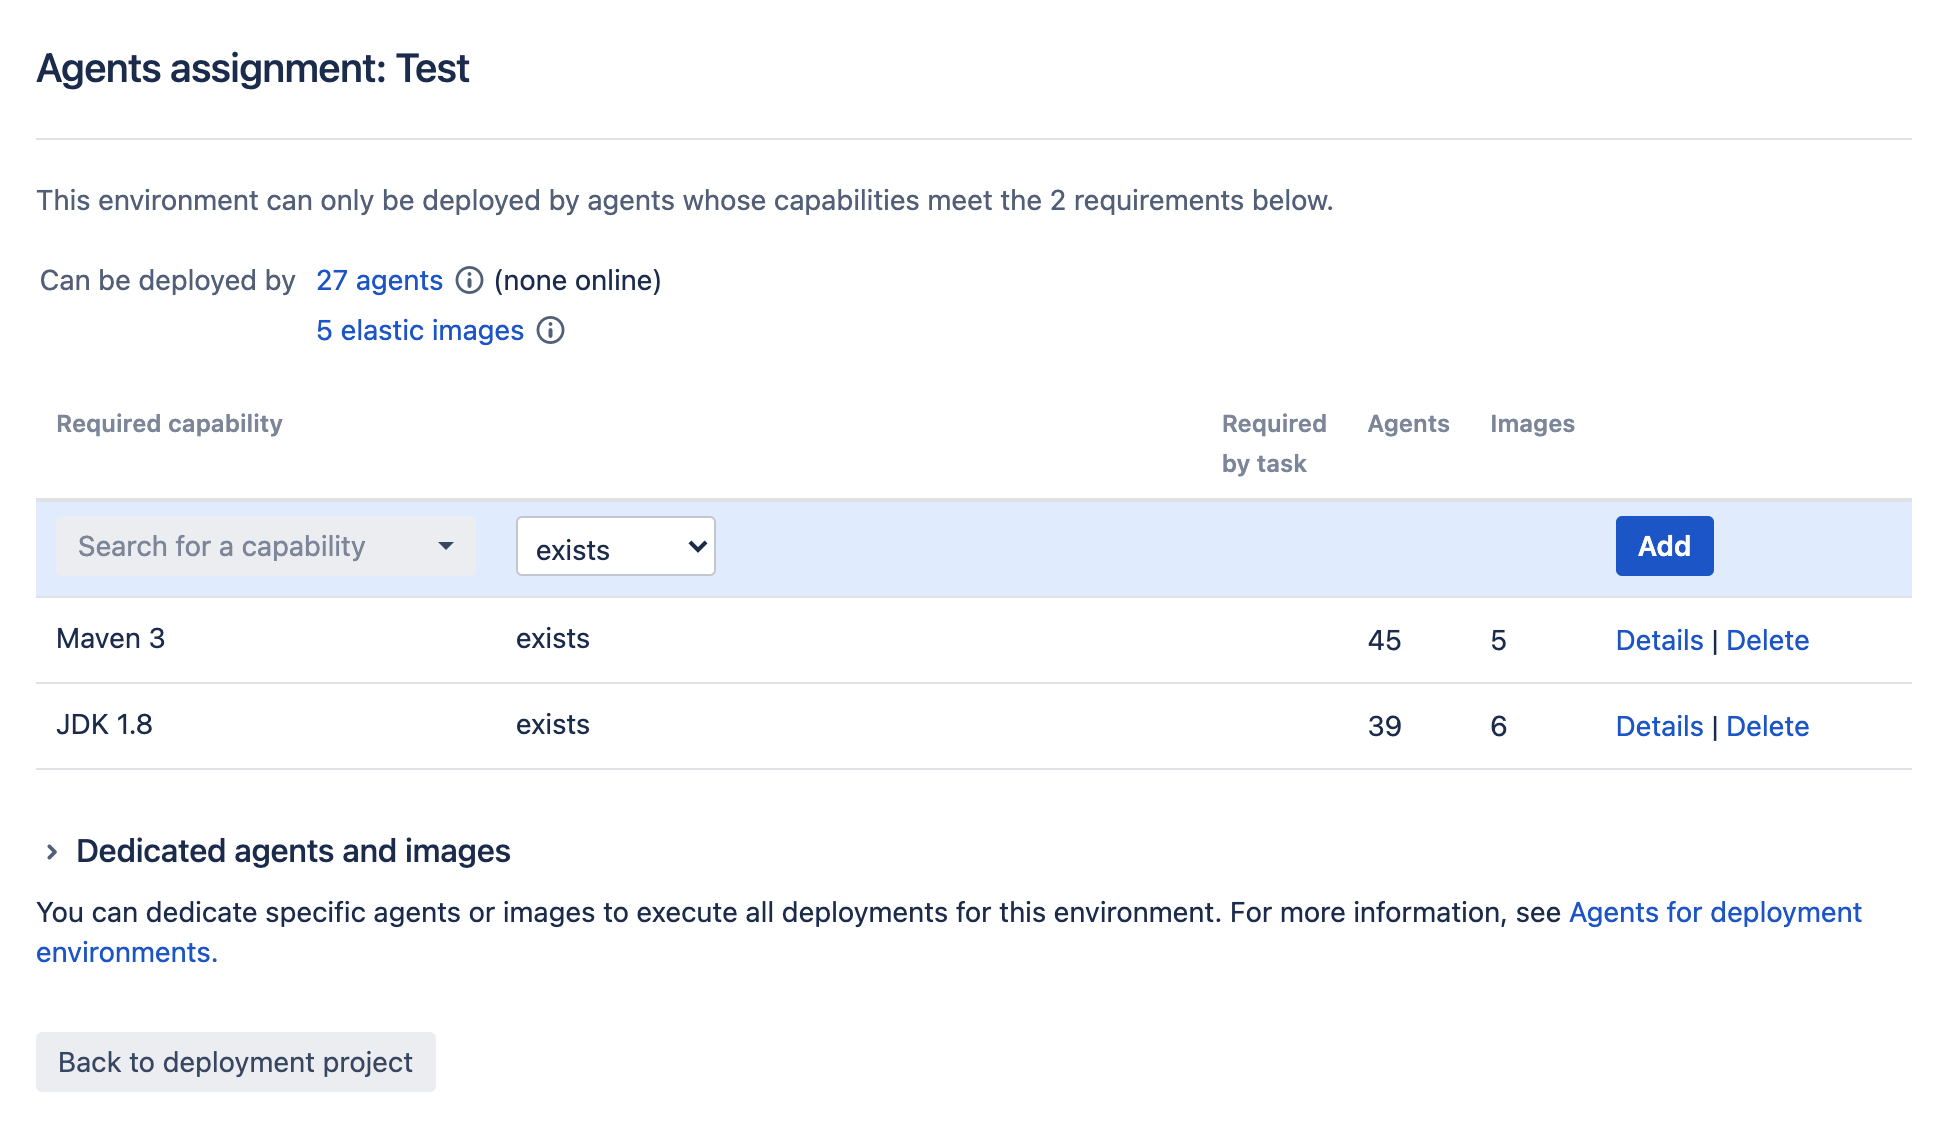 Assign agents for deployment environment screen